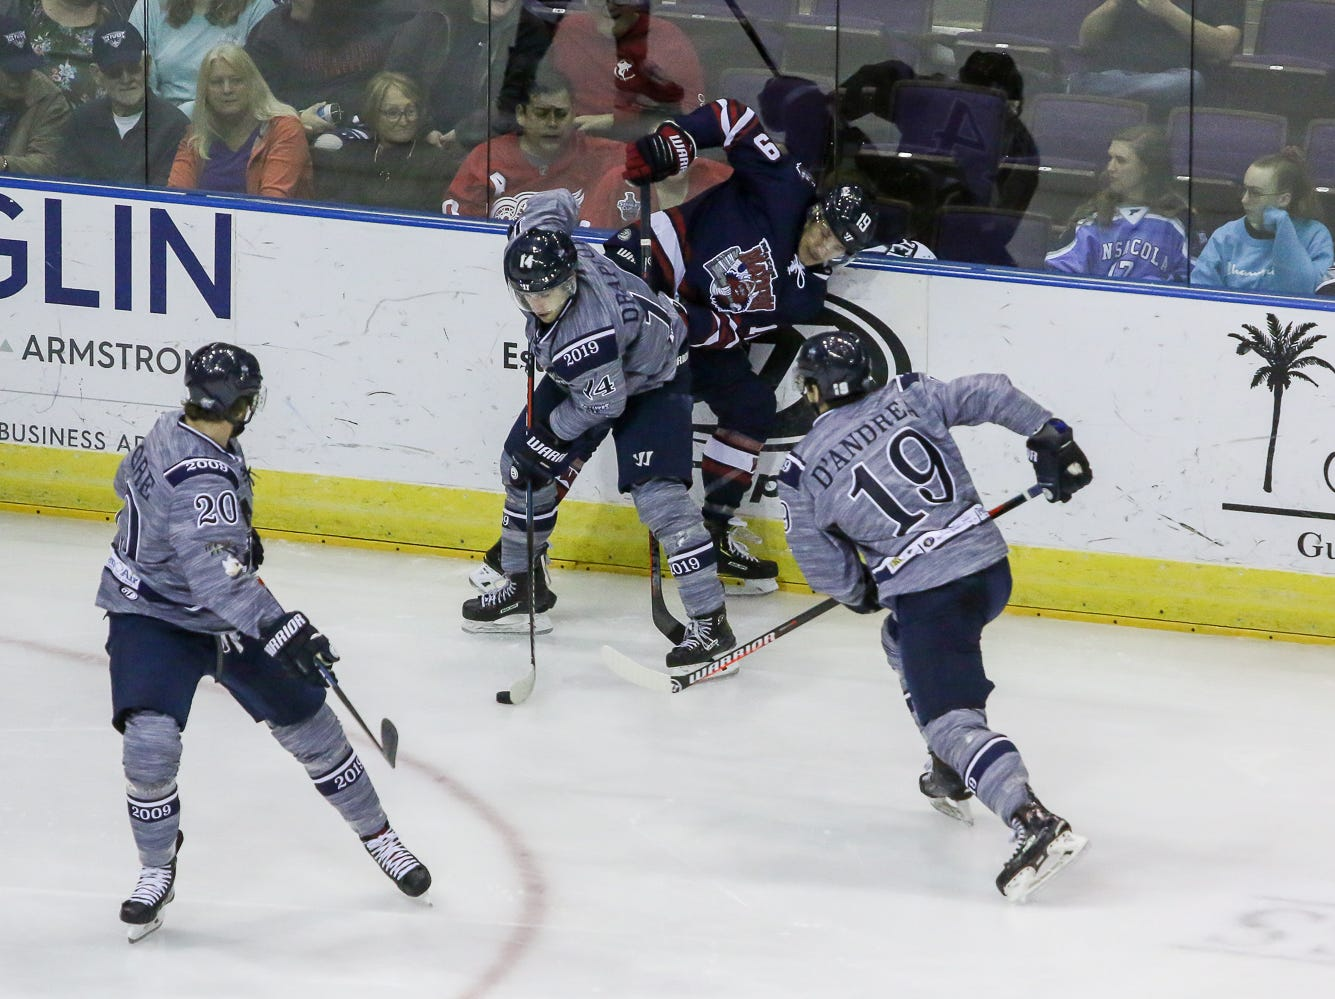 With Macon's Derek Sutliffe (19) pinned against the boards, Pensacola's Joseph Drapluk (14), Tim Moore (20), and Brett D'Andrea (19) work to clear the puck during the last home game of the regular season at the Pensacola Bay Center on Saturday, March 23, 2019. With over 4,300 people in attendance for Pensacola's 3-1 victory, the Ice Flyers mark six straight years of over 100,000 people at their home games each season. The team has won their last five games in a row and will finish out their last five games on the road before entering the playoffs in a couple of weeks.